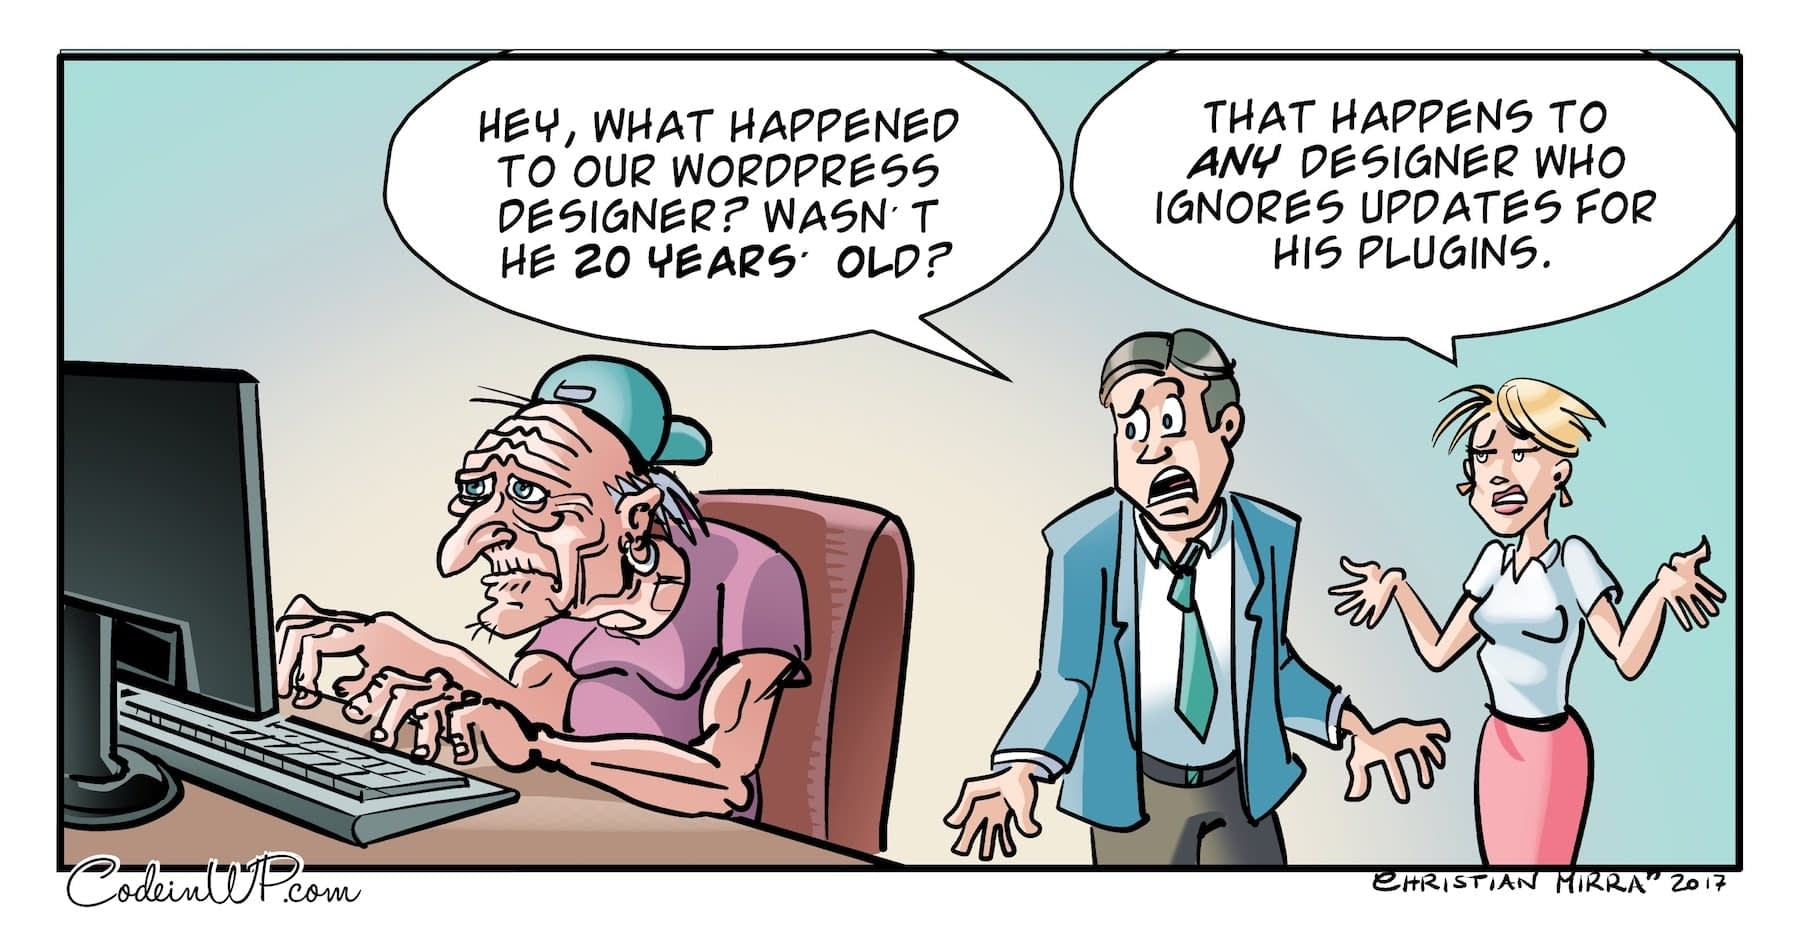 WordPress jokes about the stress of working with outdated tech